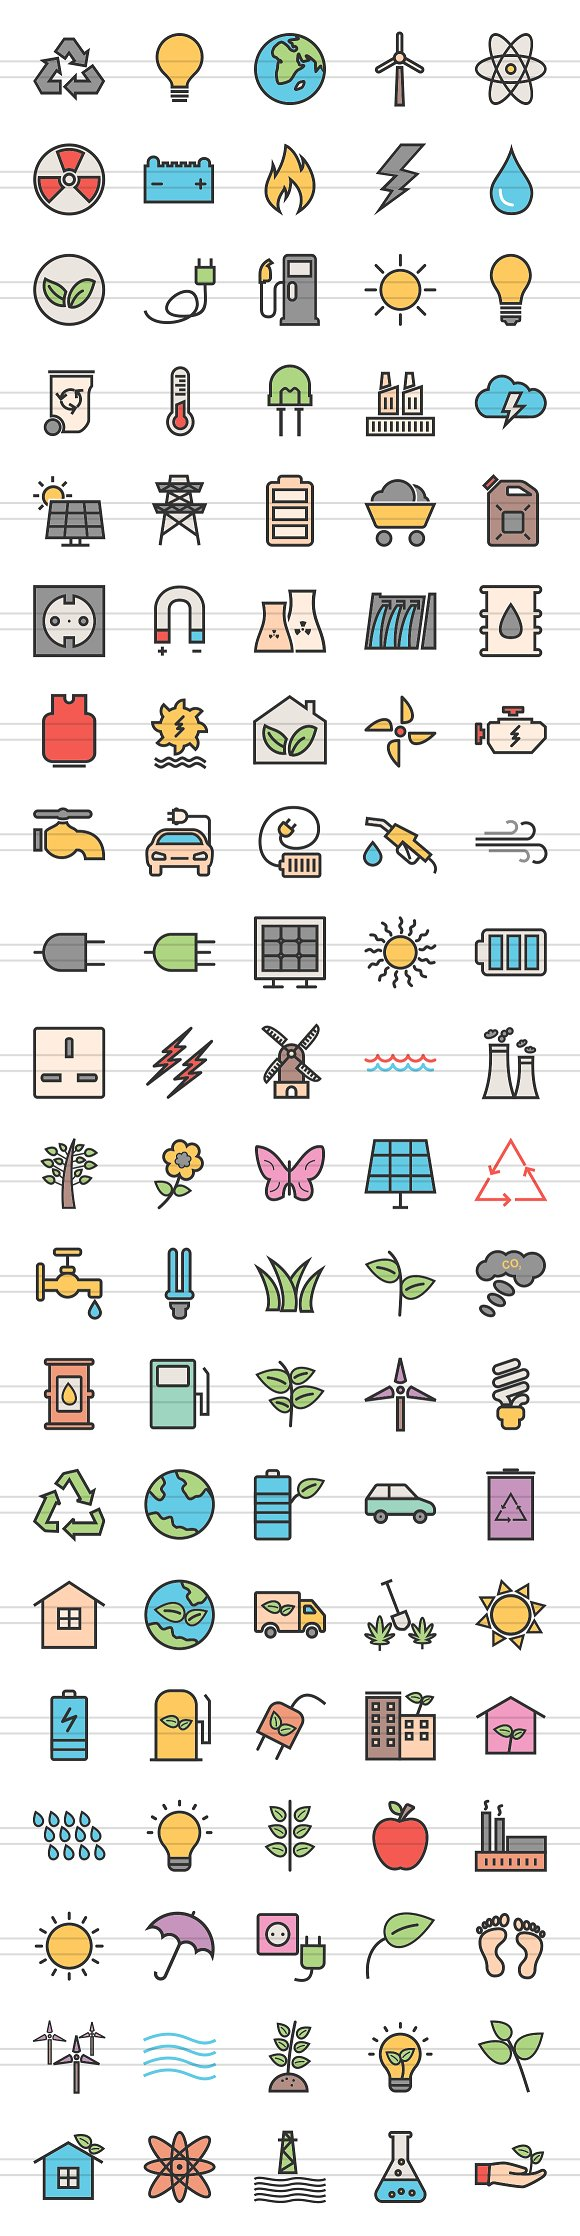 100 Energy Filled Line Icons in Graphics - product preview 1